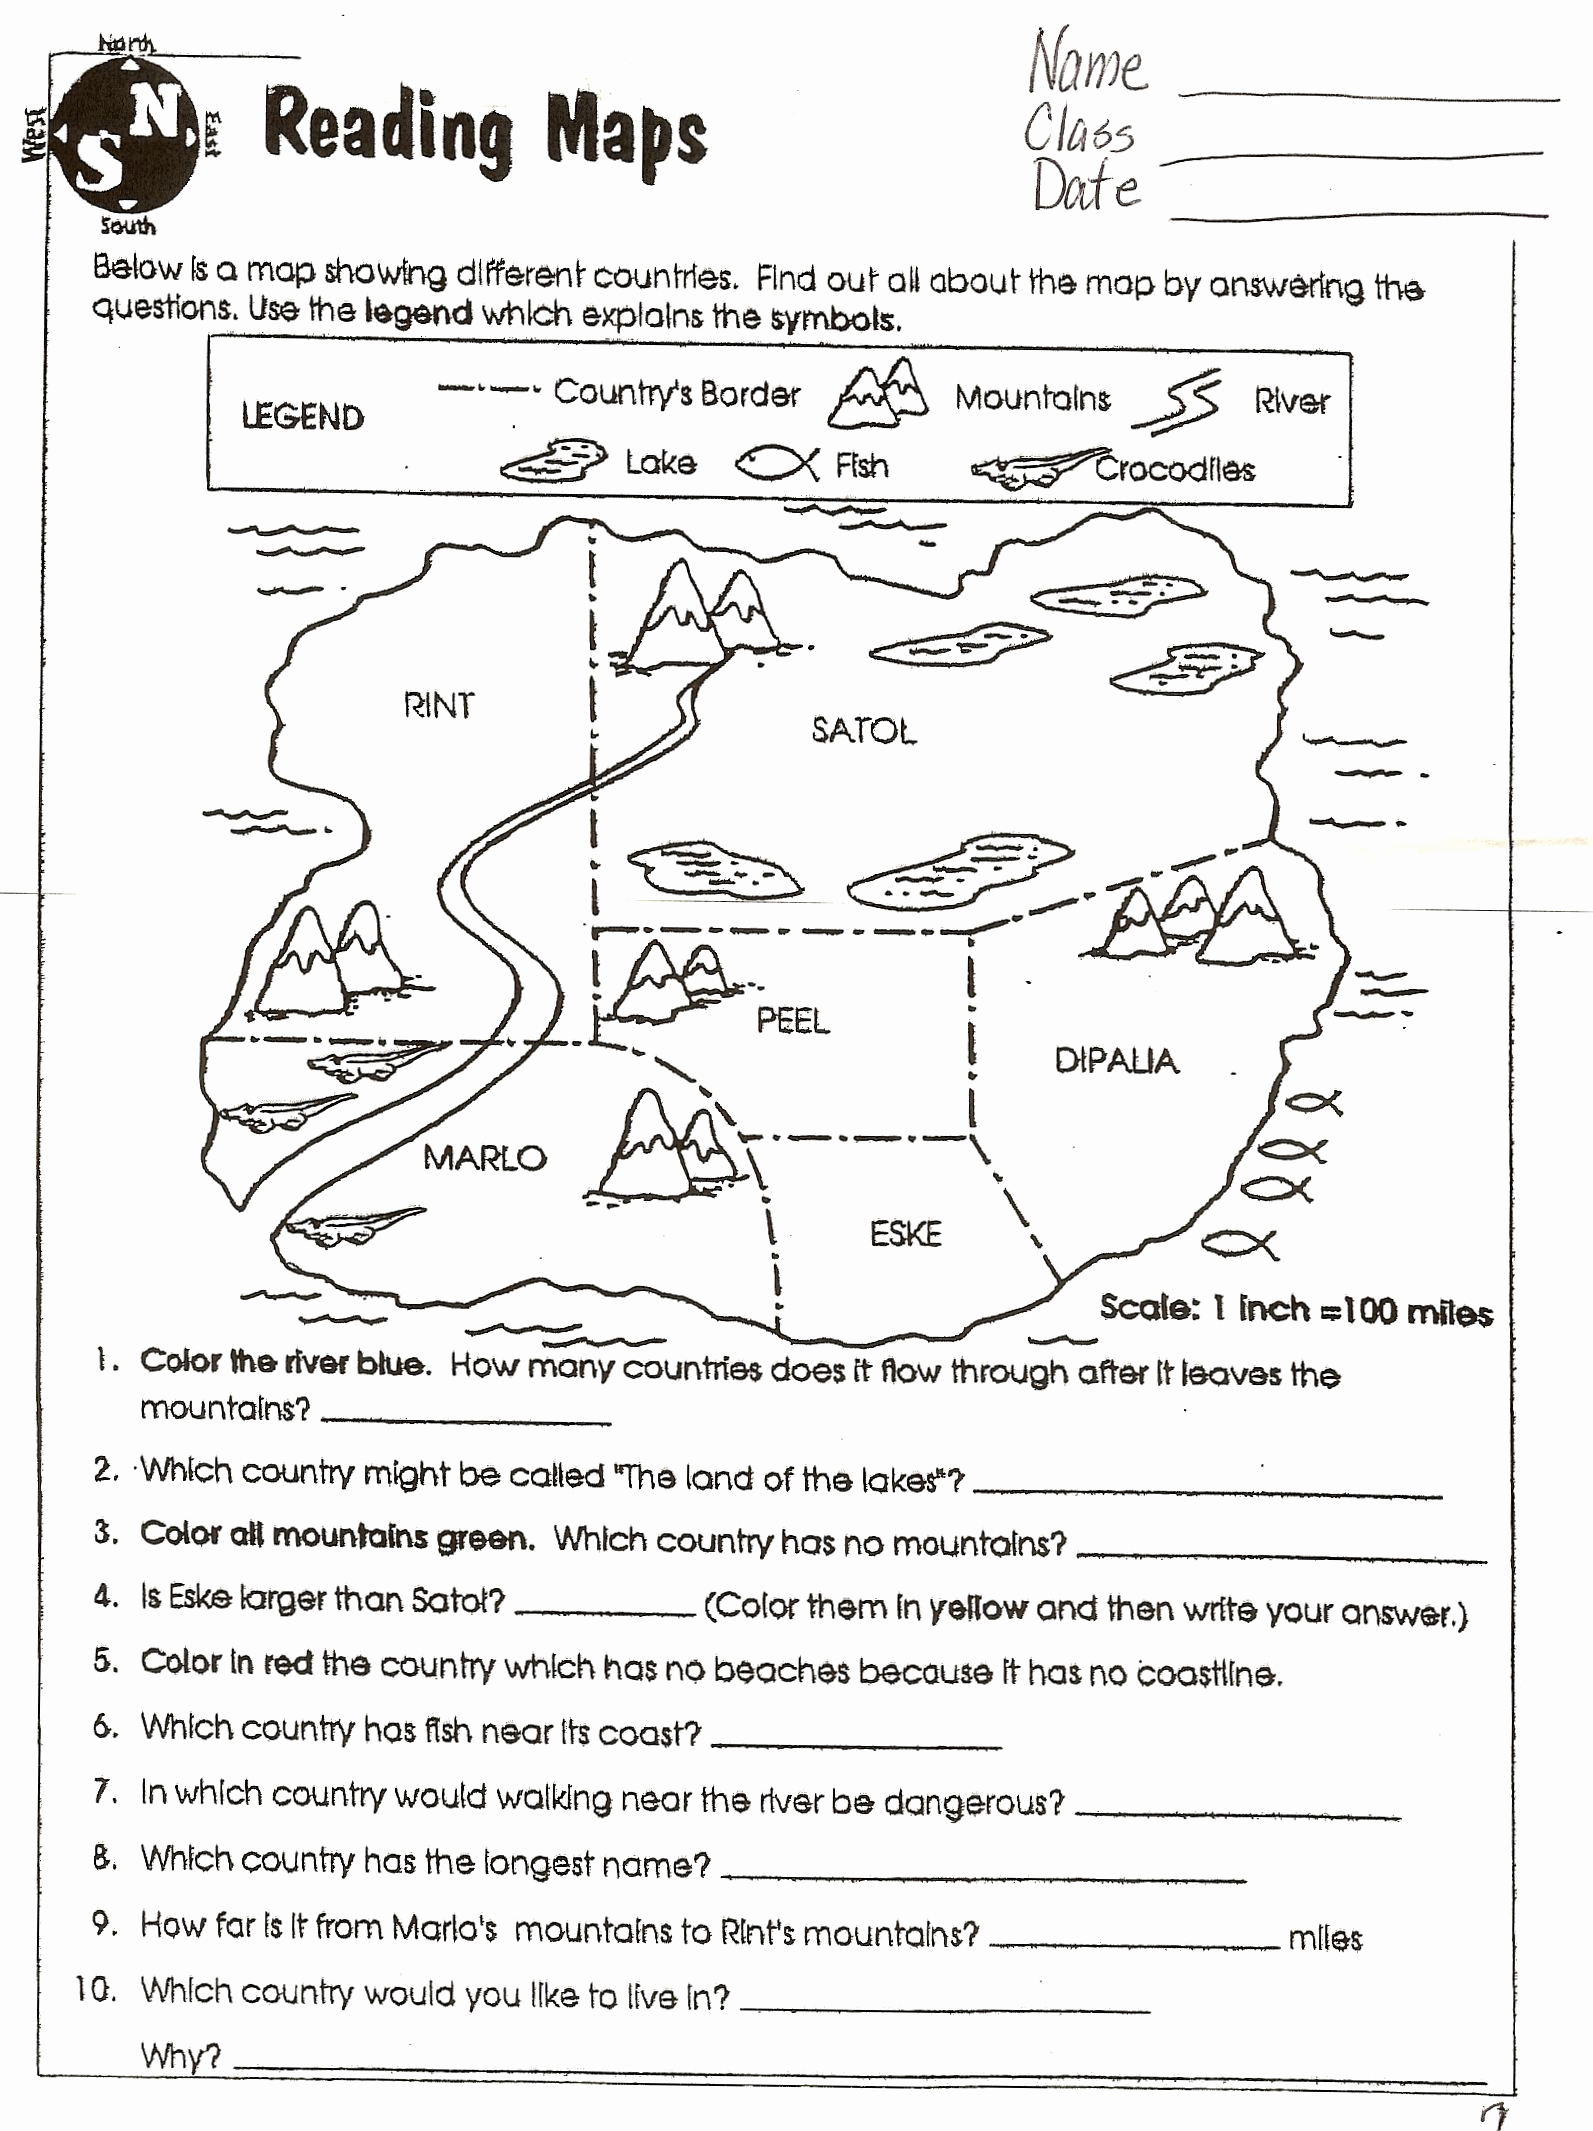 7th Grade History Worksheets Unique Worksheet 7th Grade History Worksheets Grass Fedjp